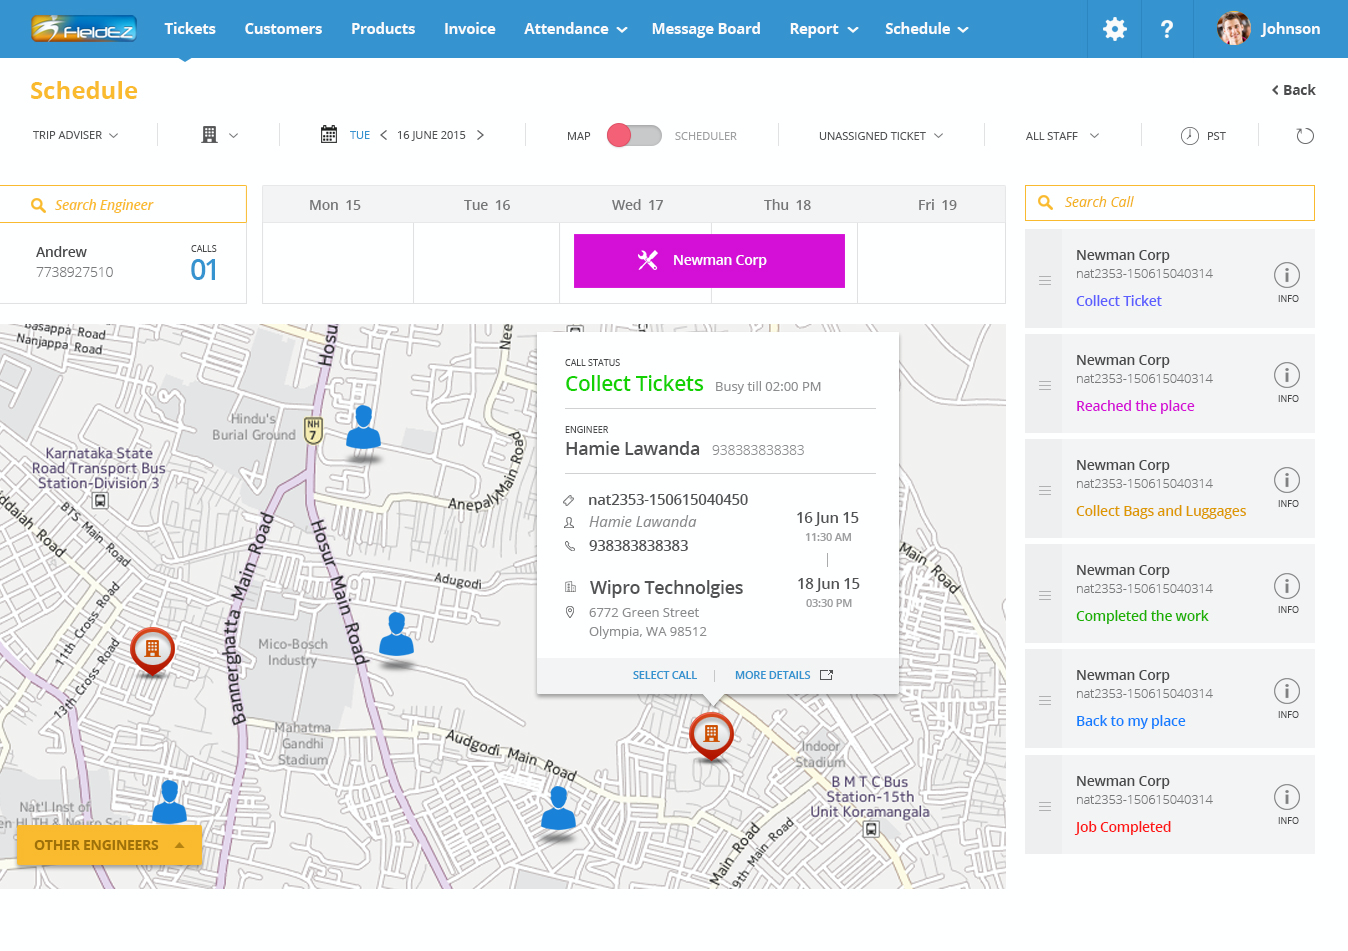 Map-based scheduler: Real-time view of users customers and tickets on the map